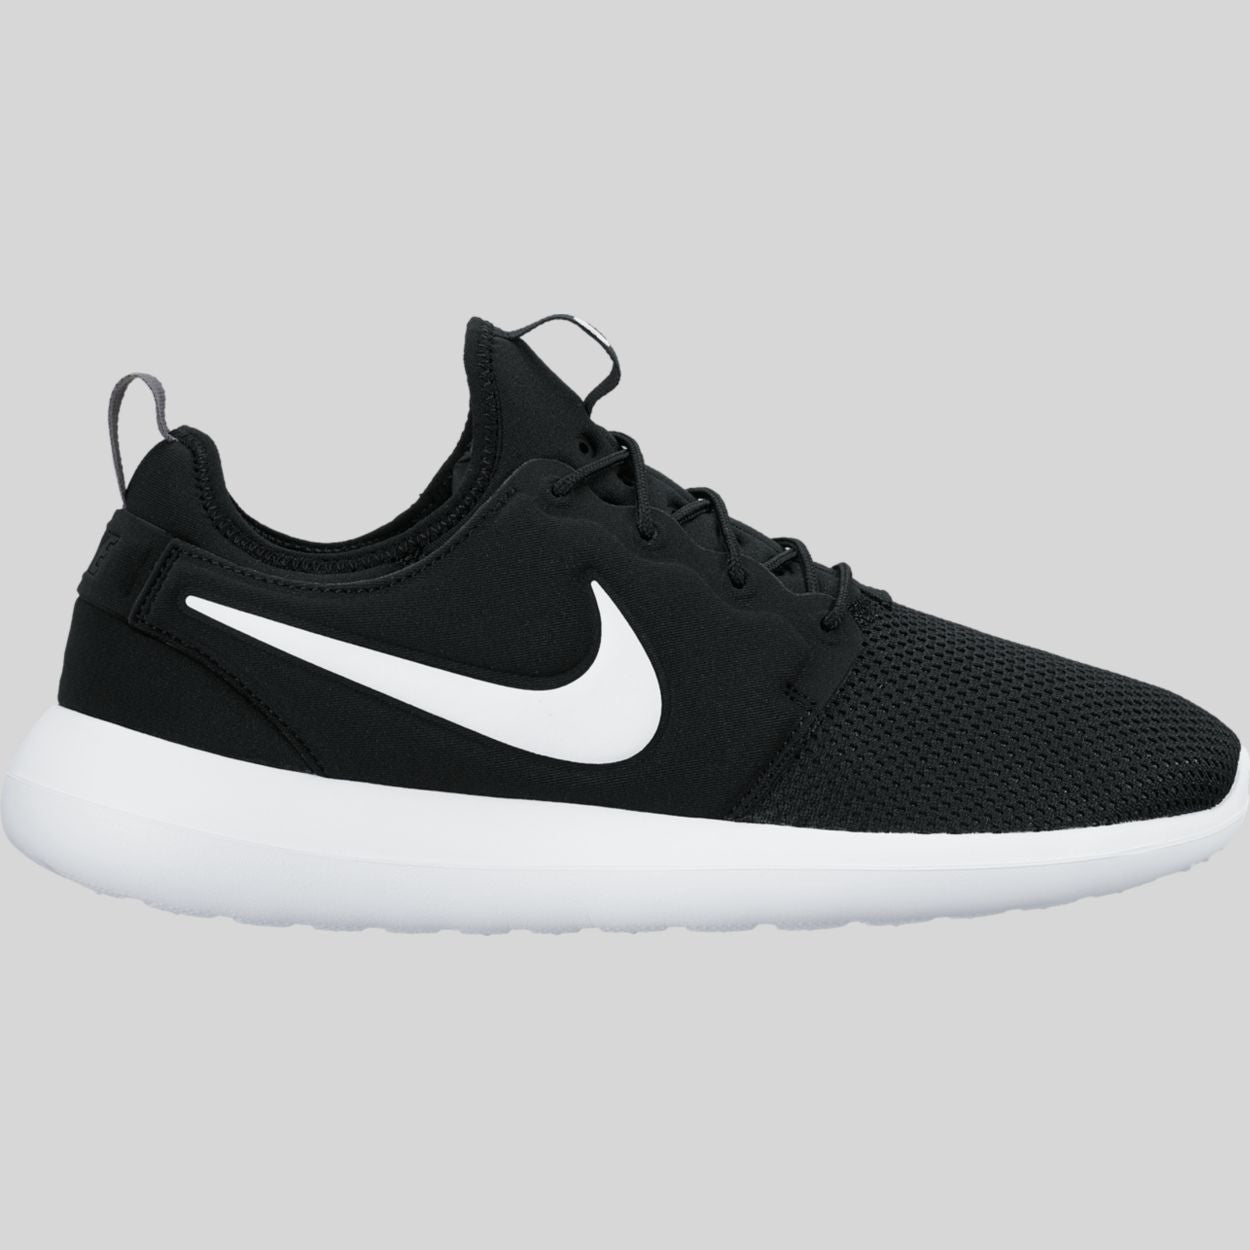 Nike Roshe Two Black White Anthracite White (844656-004)